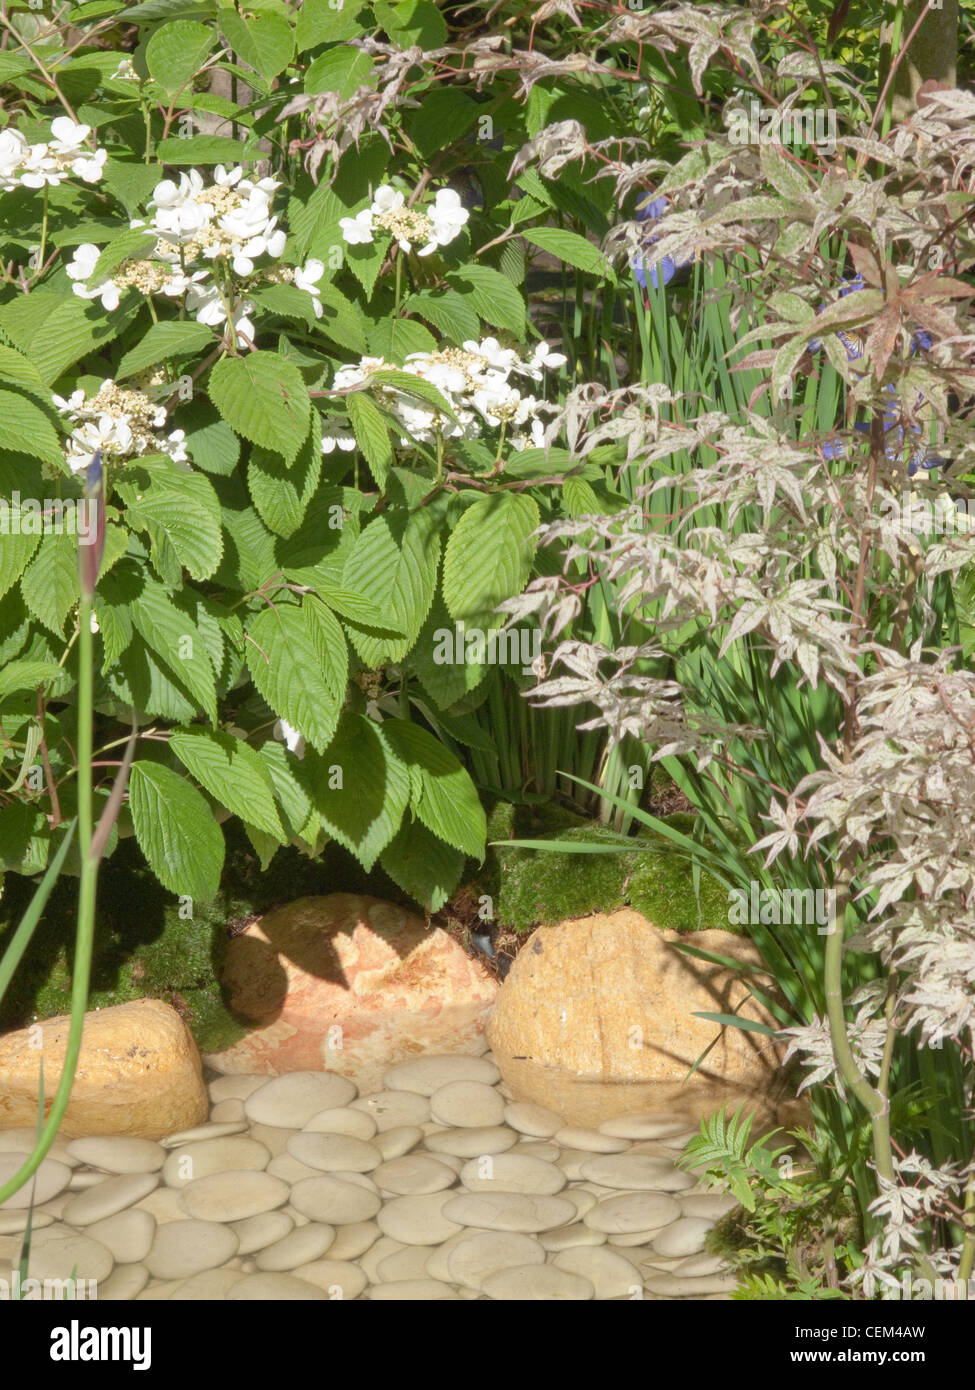 oyal Horticultural Society Chelsea Flower Show in London Lacecap hydrangeas set beside small, shallow pool decorated - Stock Image